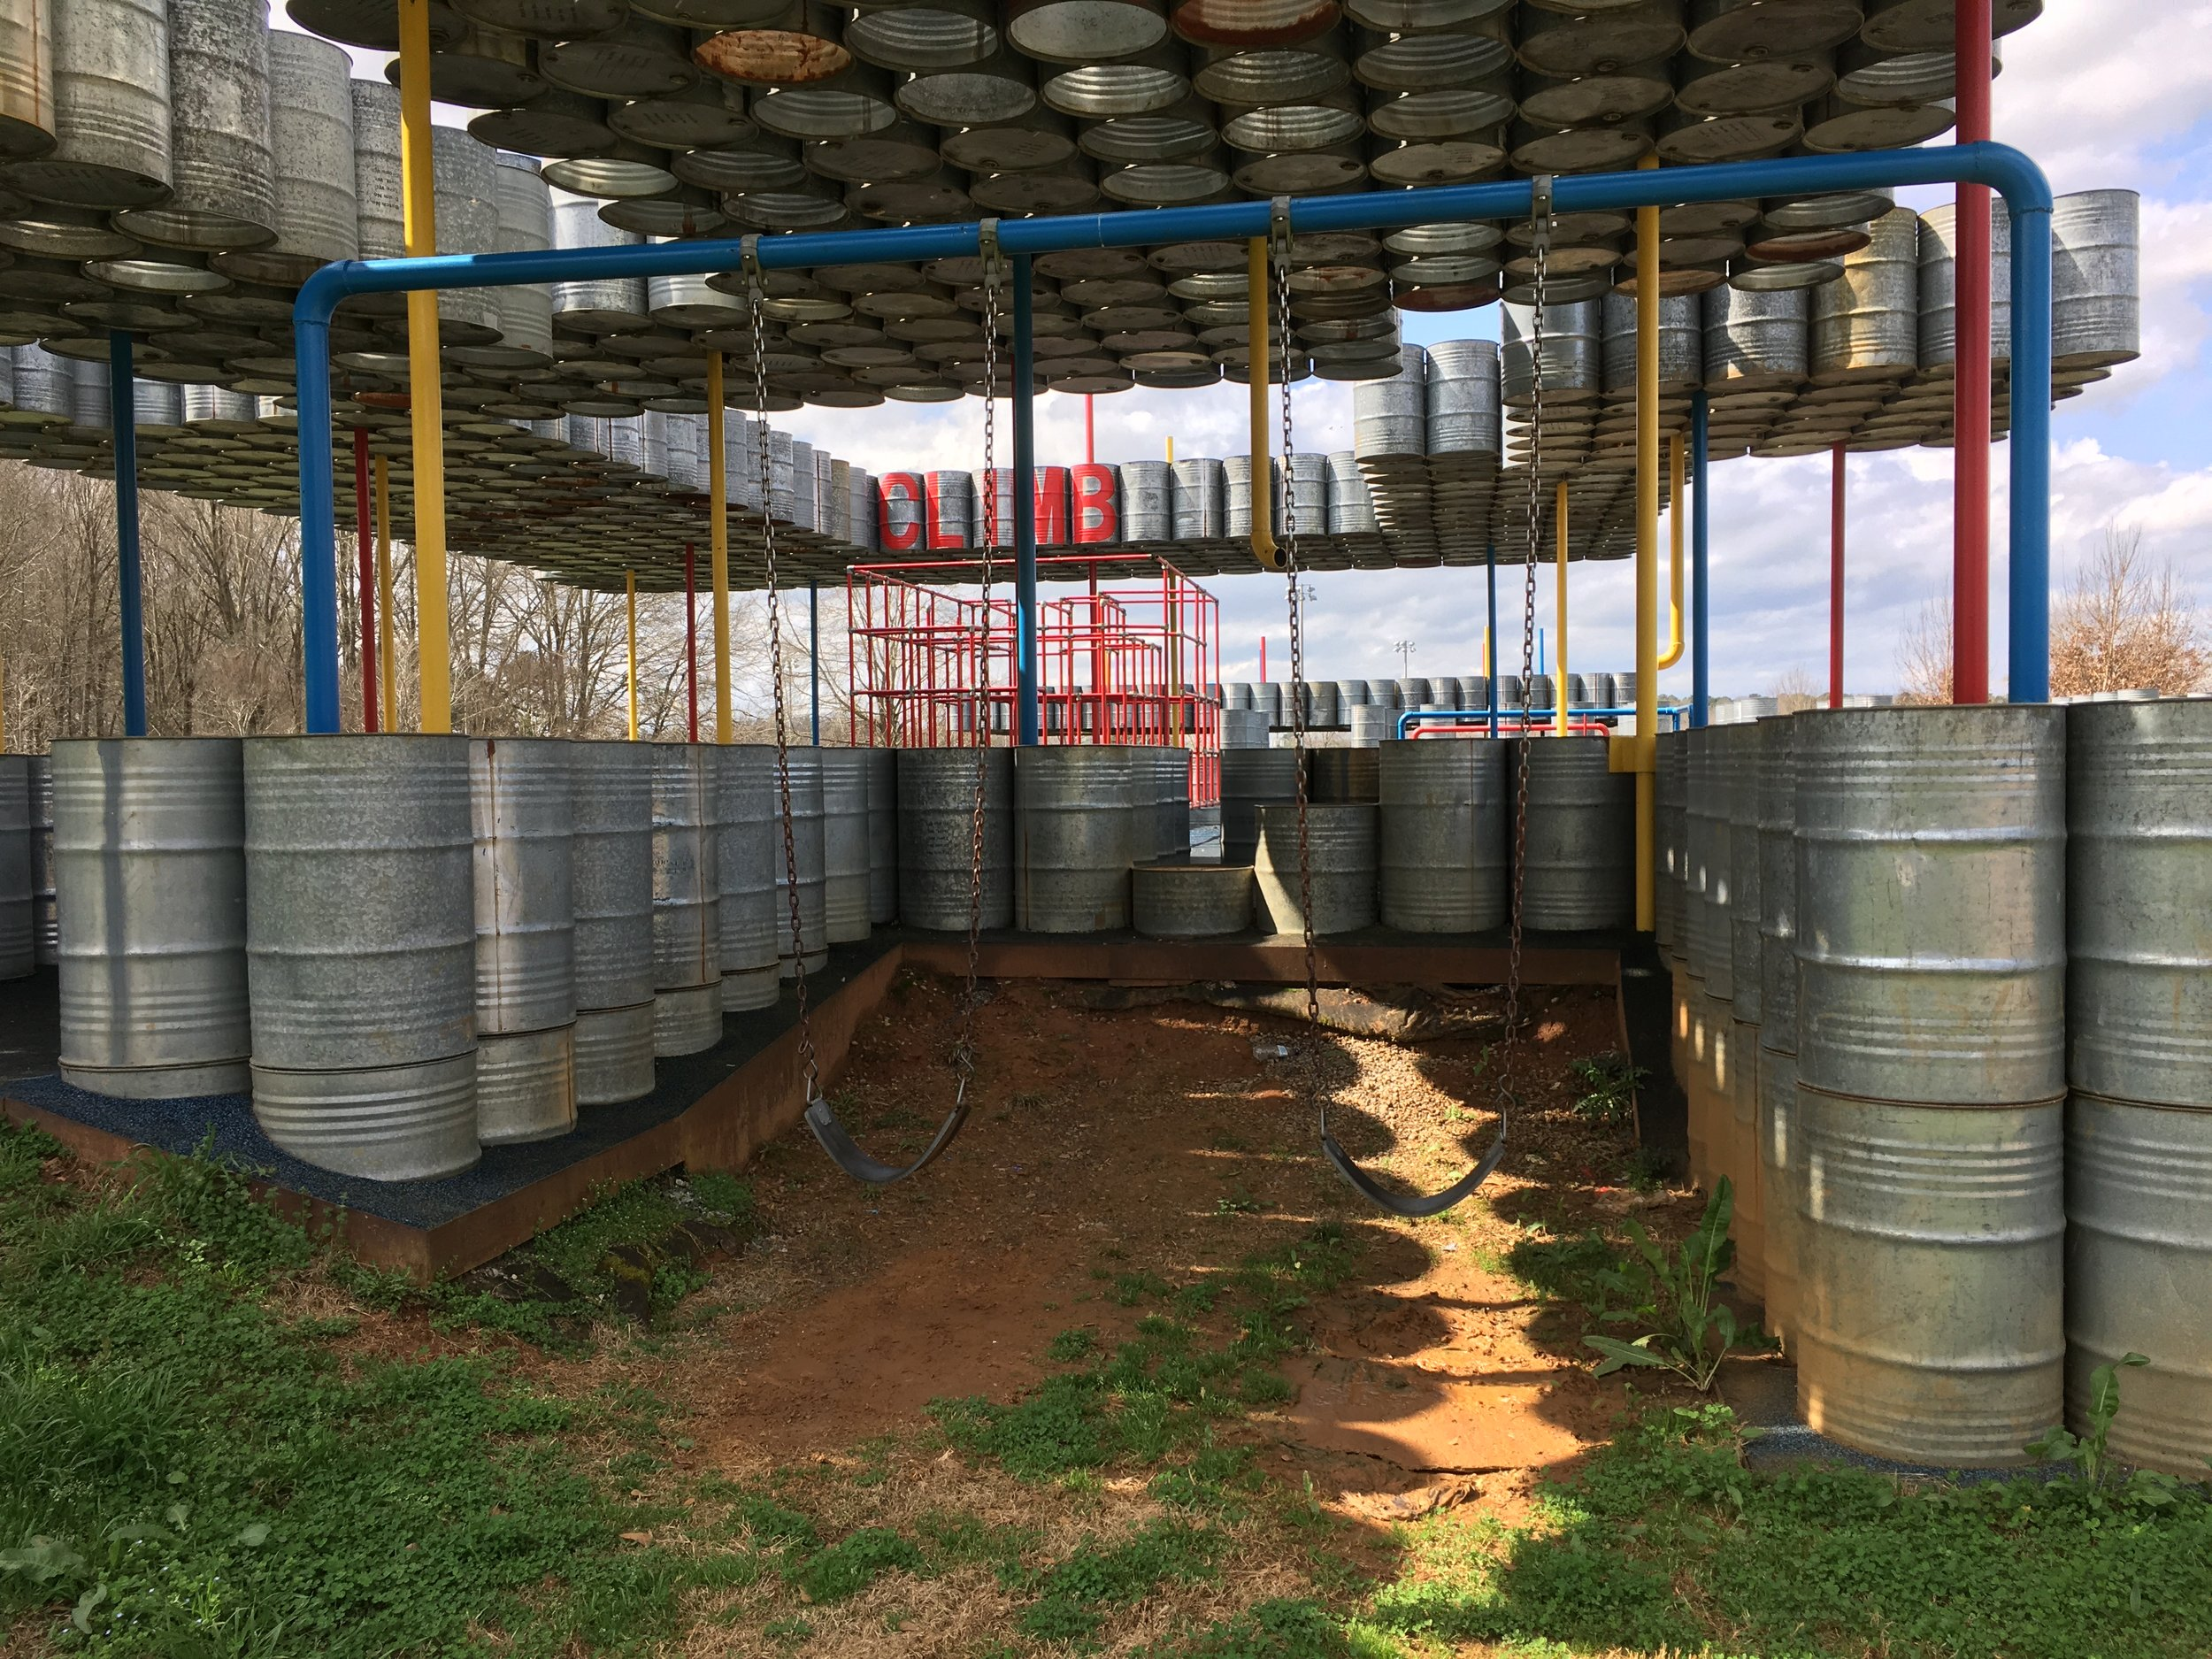 Lions Park playscape created from metal barrels given to Rural Studio by a large company that would otherwise have paid to dispose of them in landfill. Students also used them to create a passive solar heat storage system for their greenhouse.